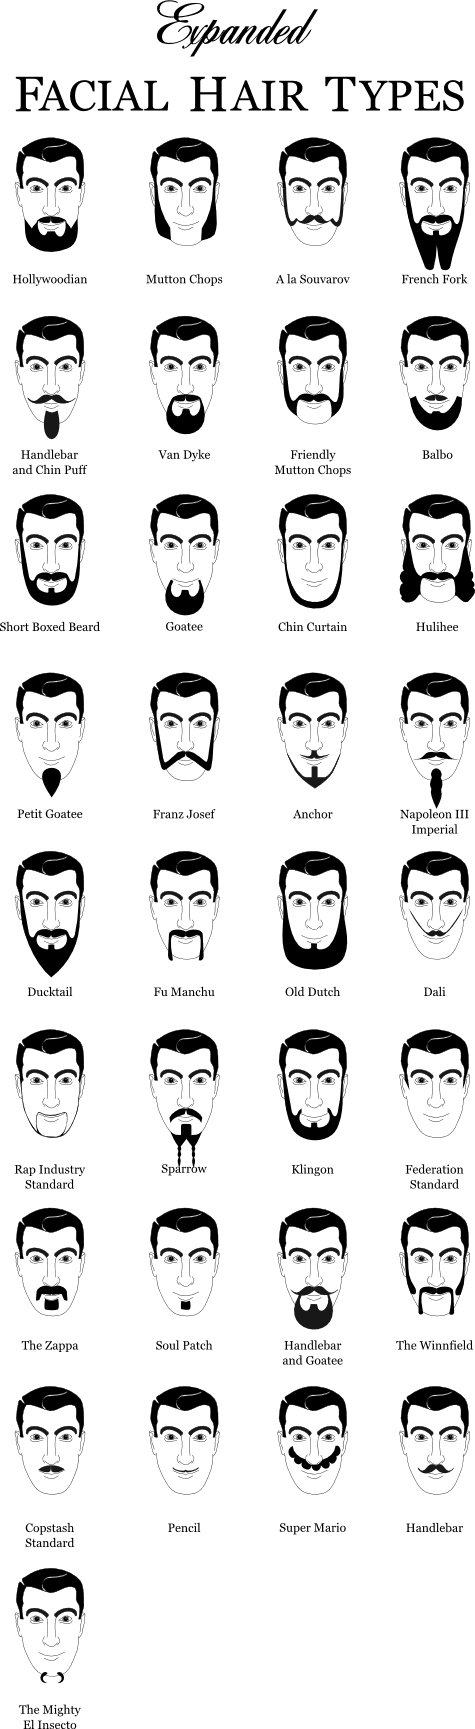 facial hair types chart